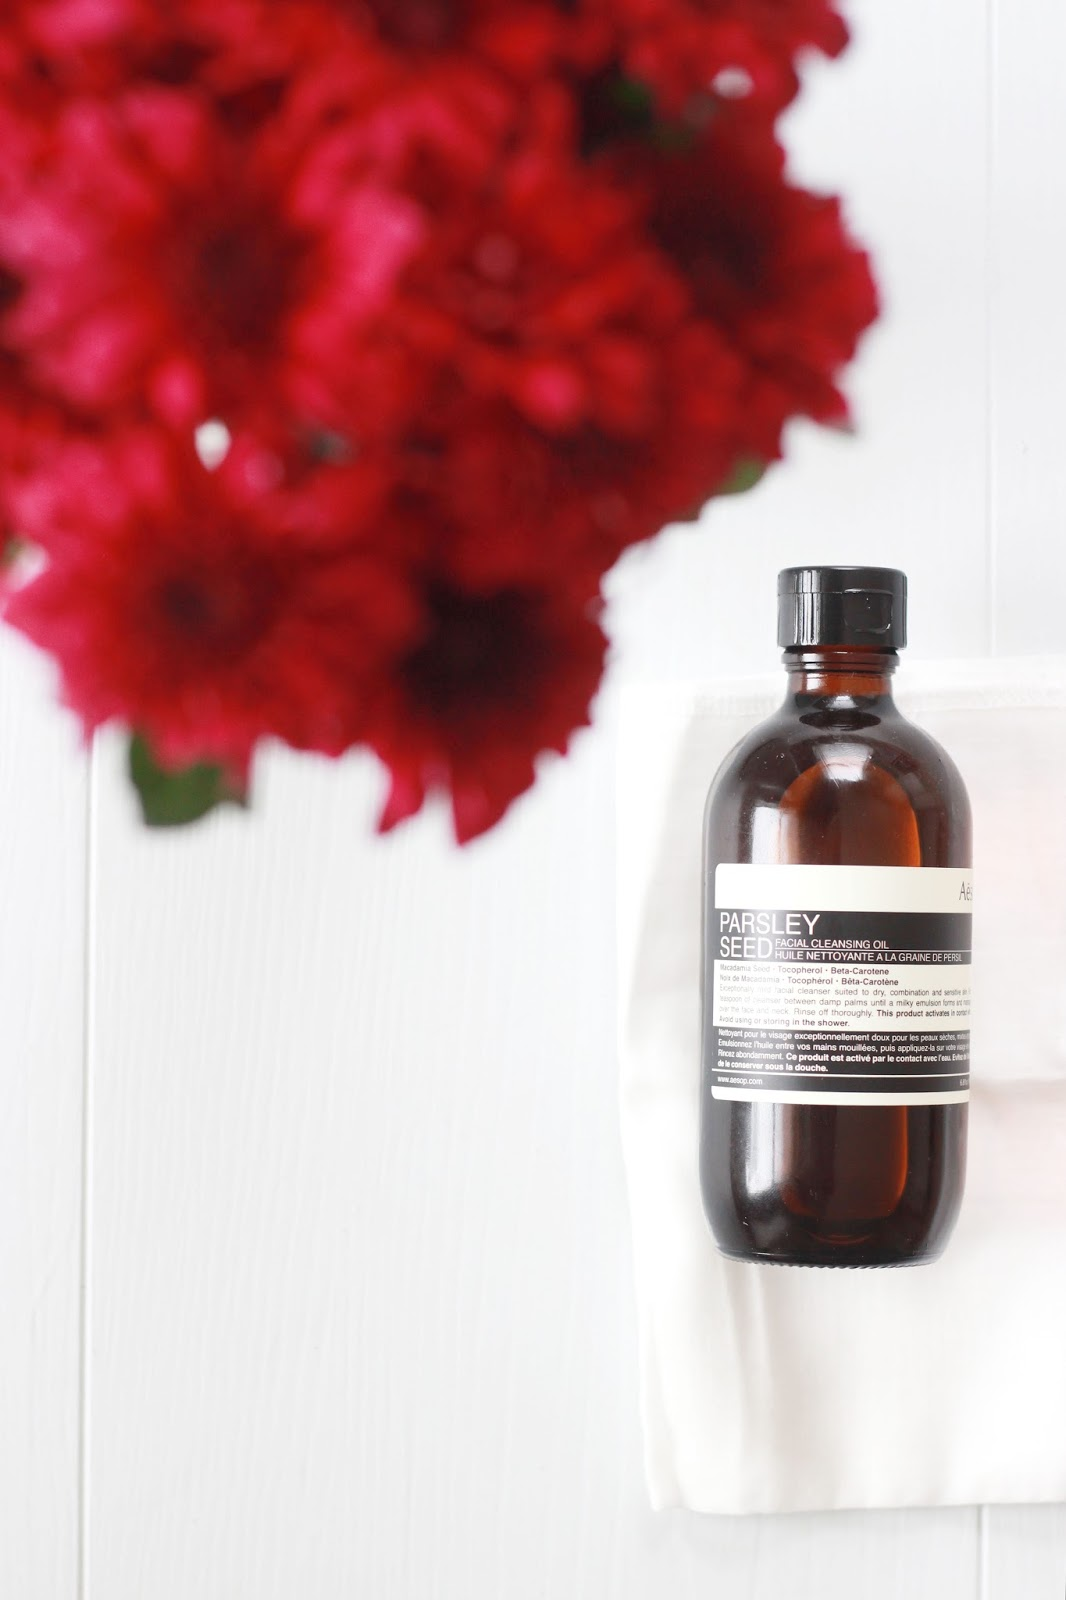 Aesop Parsley Seed Cleansing Oil